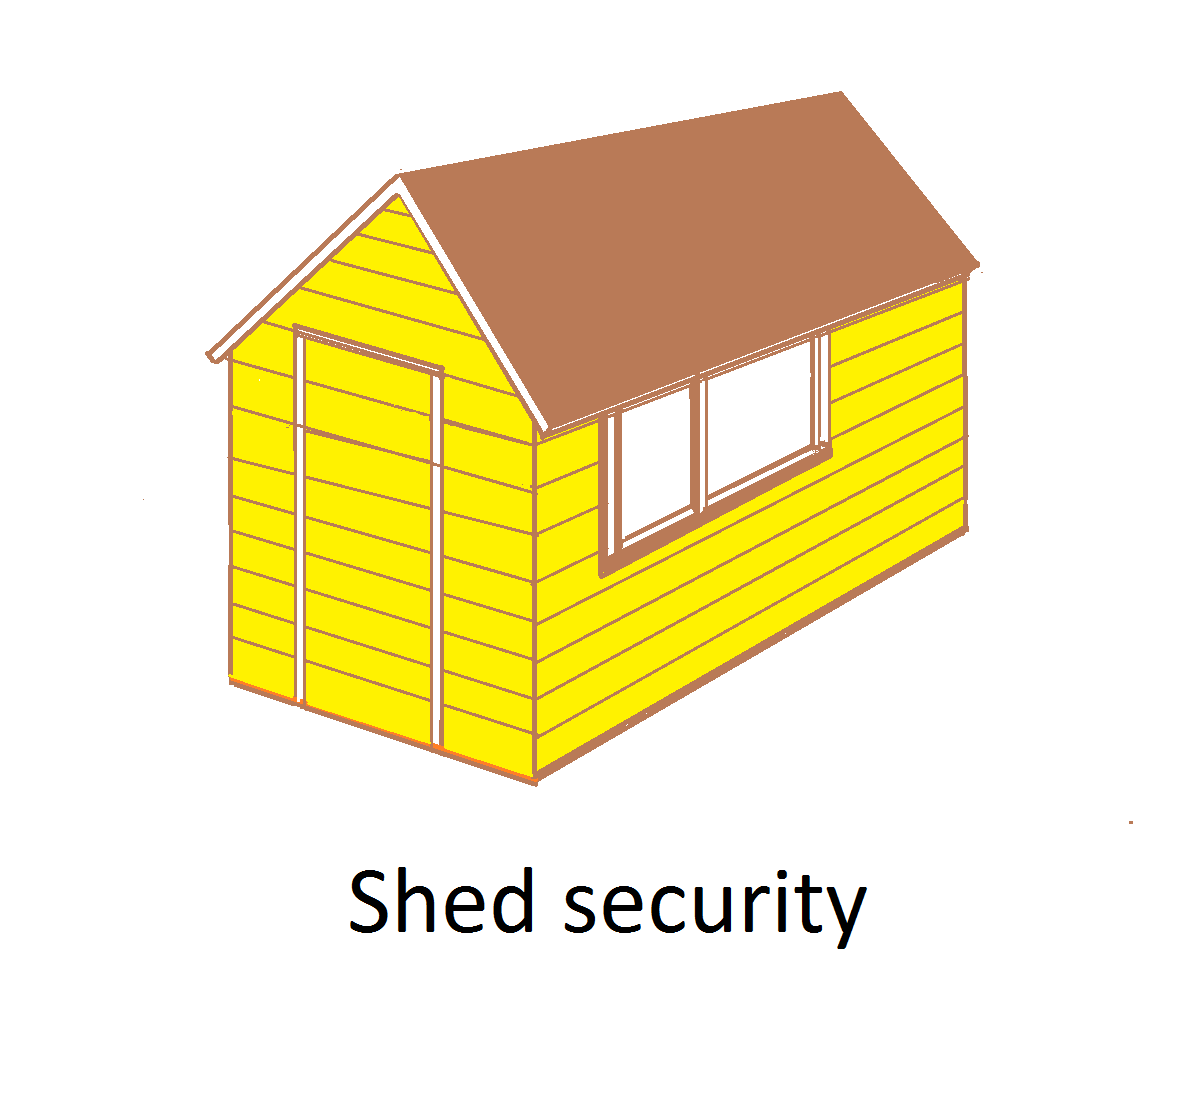 Shed security